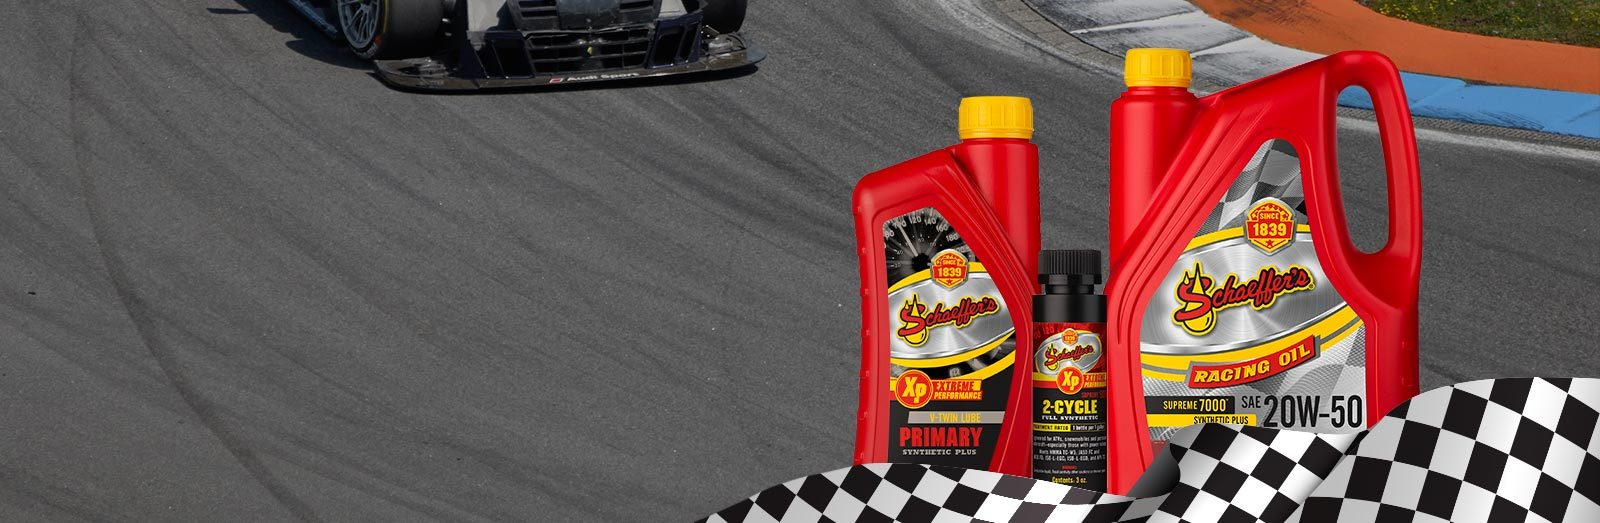 Schaeffer Oil - Fueling Every Victory